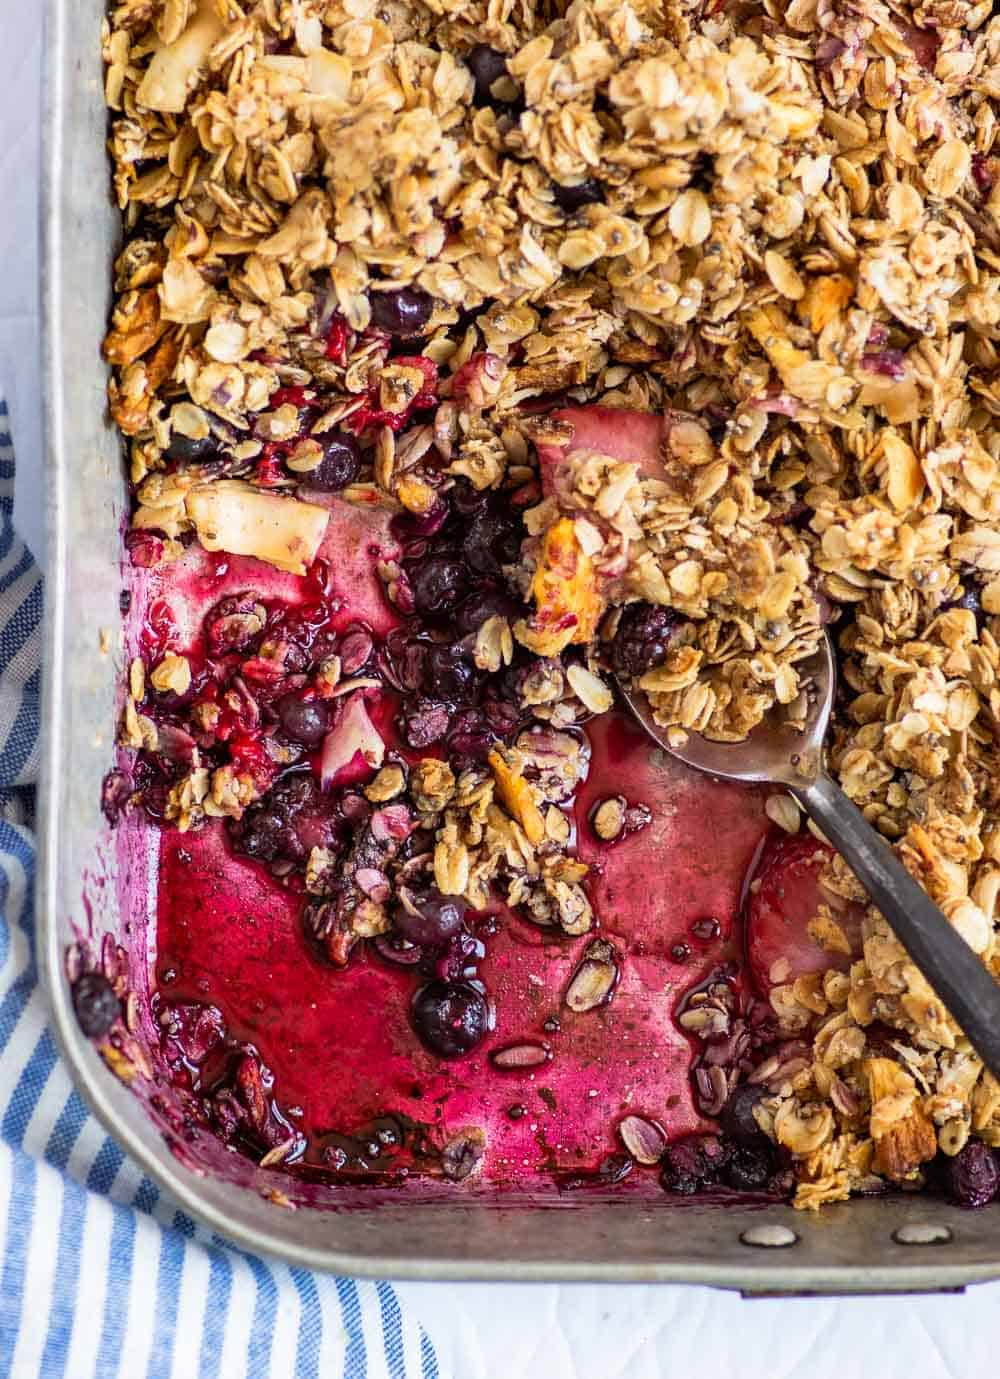 Make this Healthy Berry Crisp easily in under 45 minutes. Gluten-free and vegan, it's a terrific comforting breakfast for a crowd, or a healthy dessert! || The Butter Half #glutenfreebreakfast #glutenfreedessert #veganbreakfast #vegandessert #thebutterhalf